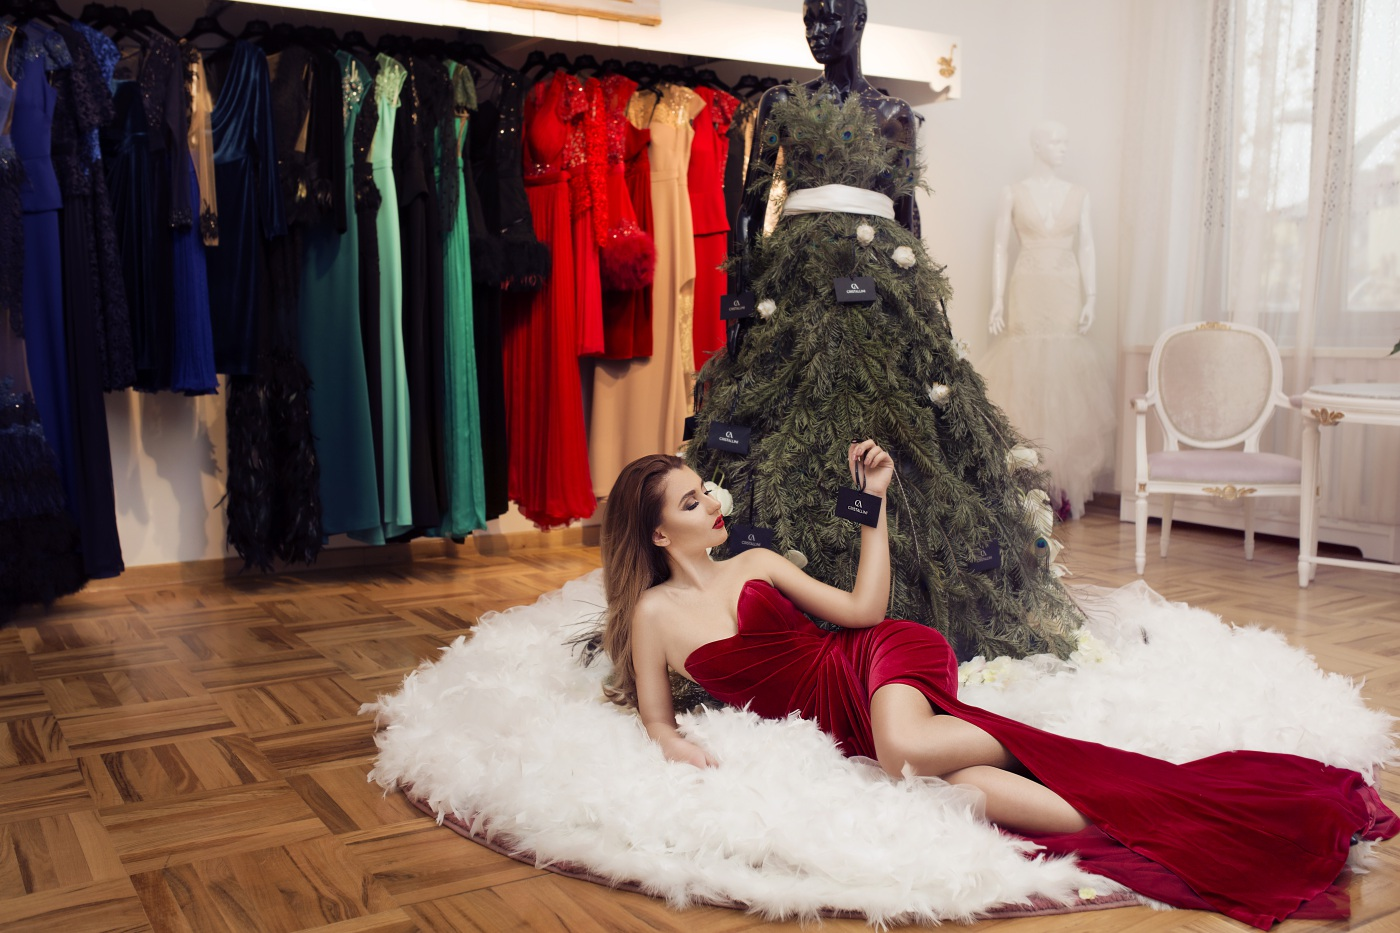 Cristallini, Christmas, CONTEST, GIVEAWAY, Luana Codreanu, blog, blogger, fashion blog, fashion blogger, style, style blogger, hairstyle, makeup, ootd, outfit, street style, AW2015, trends, fashion, Talmaciu Claudiu, Andra Preda, make-up artist, photographer, red velvet dress.